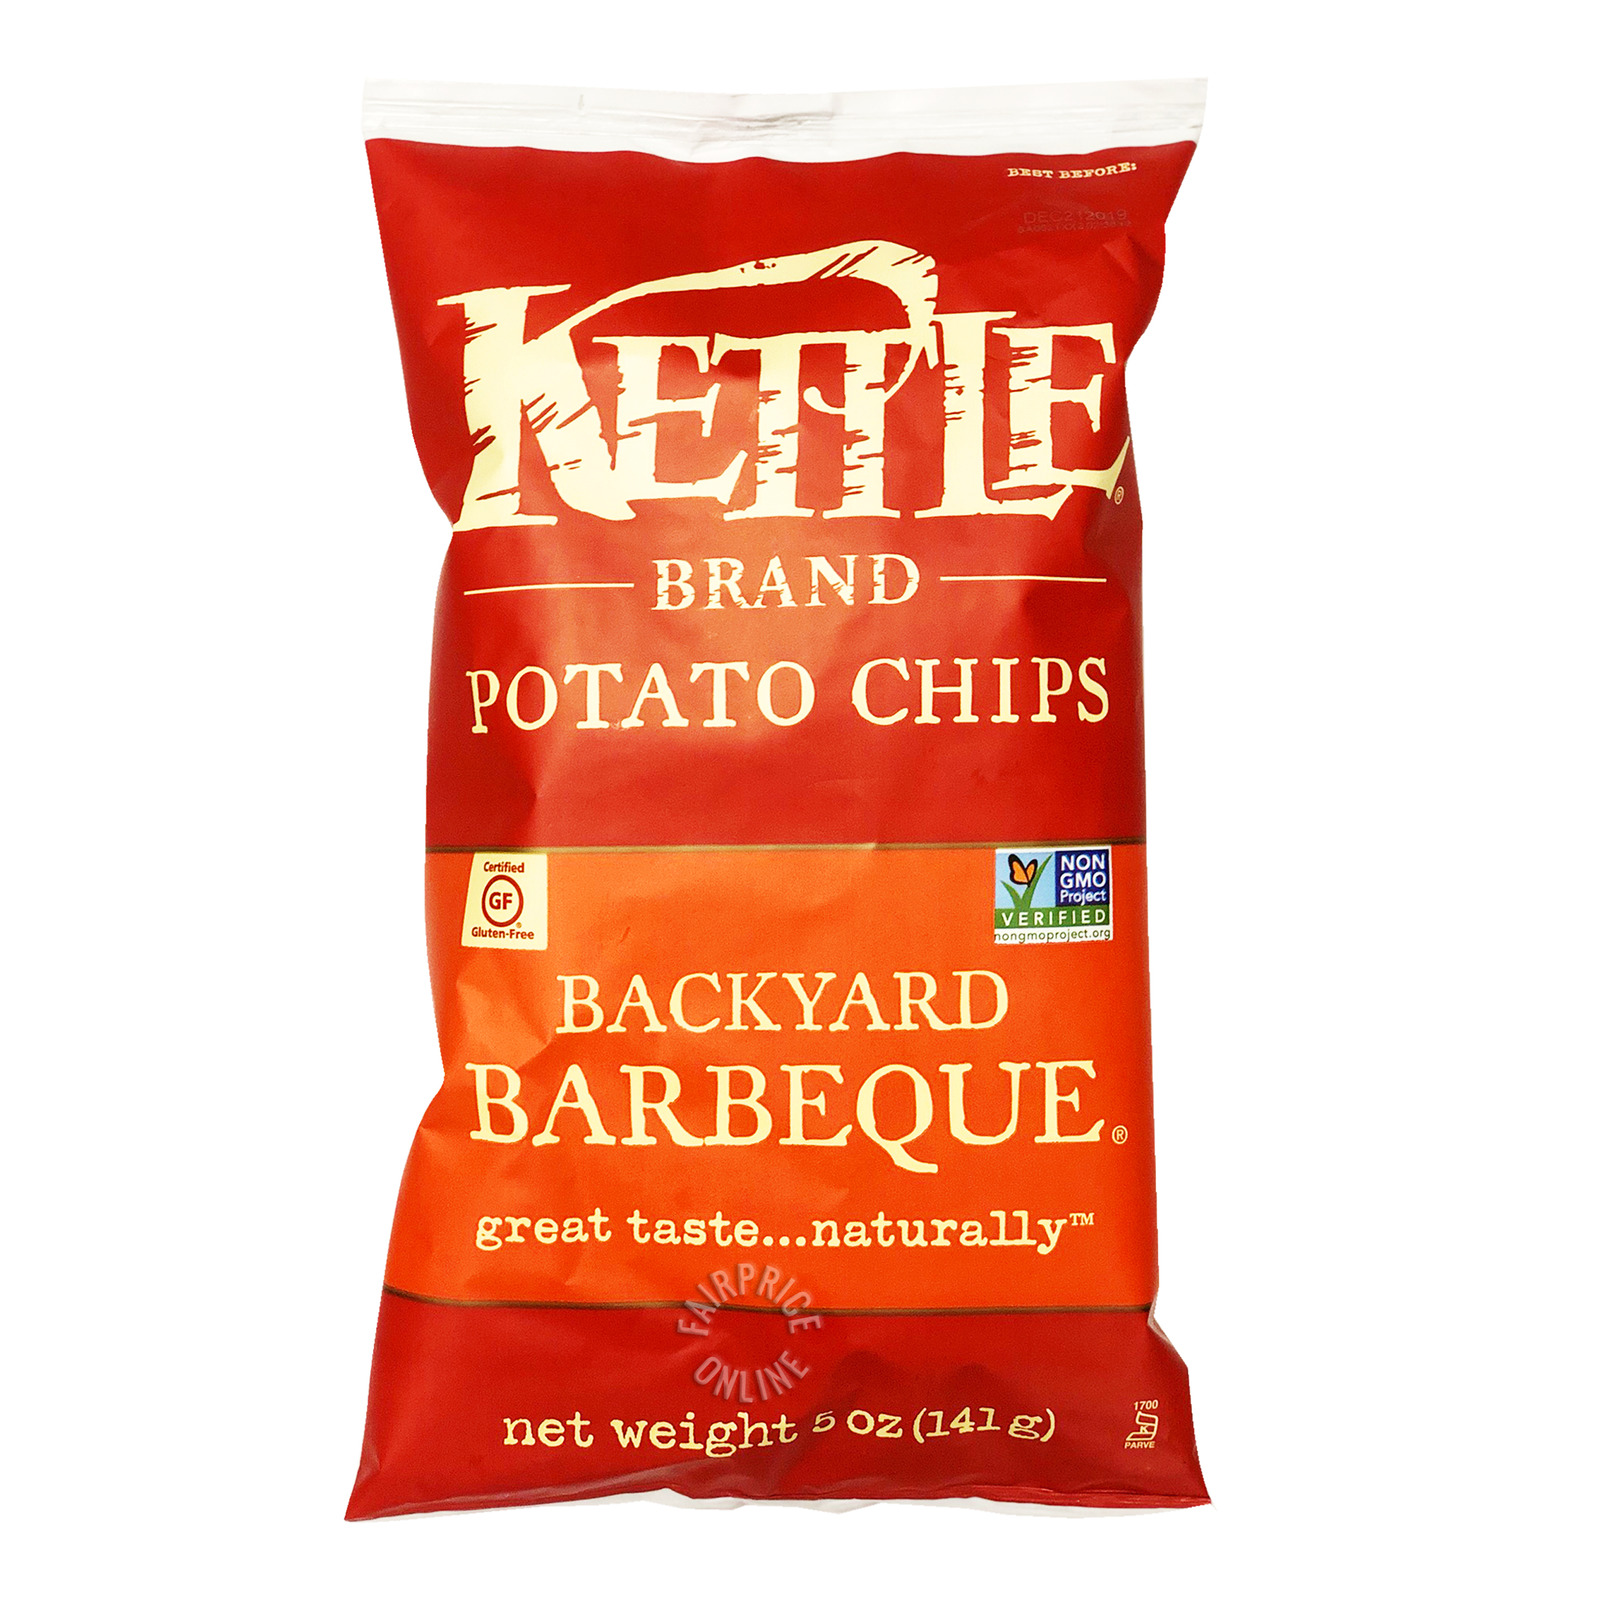 Kettle Brand Potato Chips - Backyard Barbeque